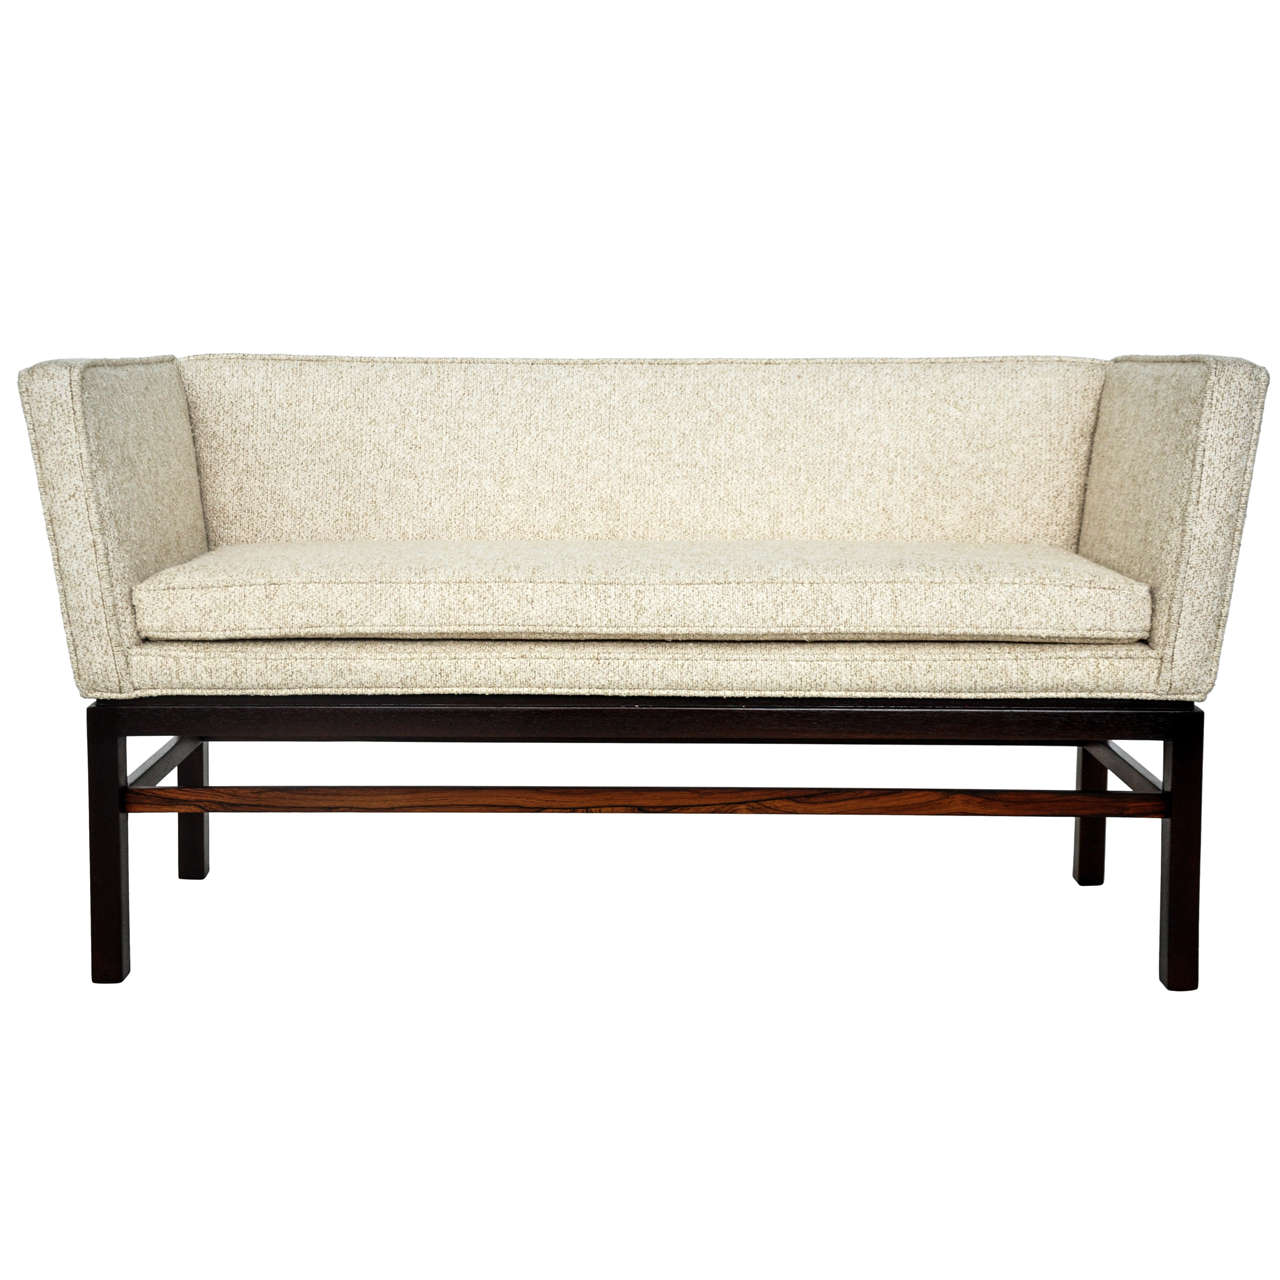 Dunbar Rosewood Settee Bench by Edward Wormley at 1stdibs